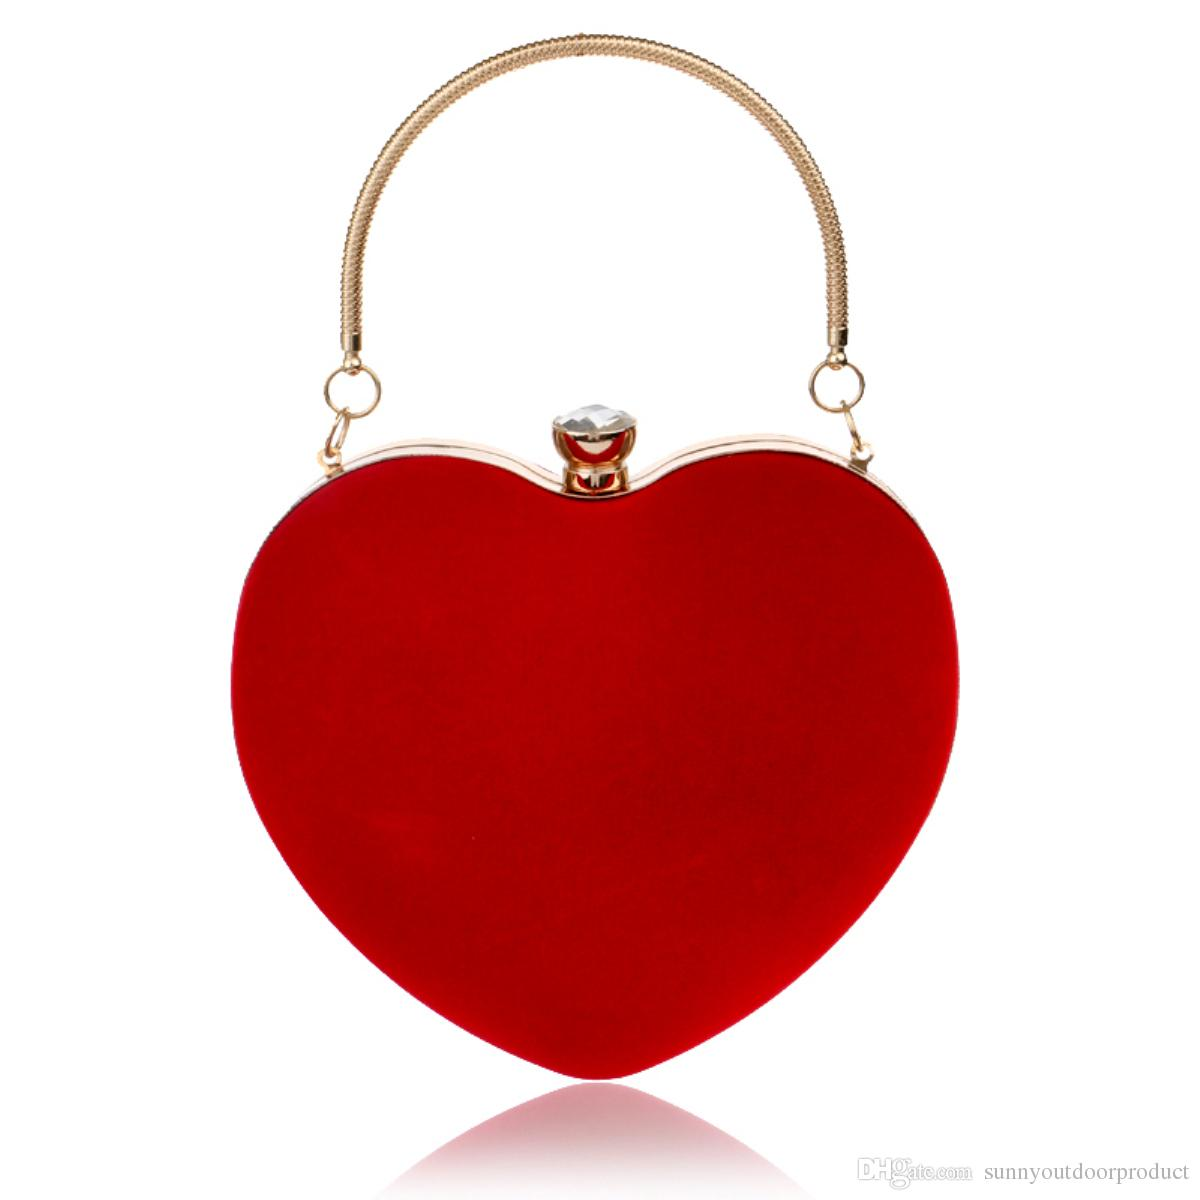 New Fashion Heart Shaped Women Evening Bags Red/Black Clutch Bag Lady Shoulder Bag With Chain Girl Wristlet Wallet Purse For Wedding Dinner